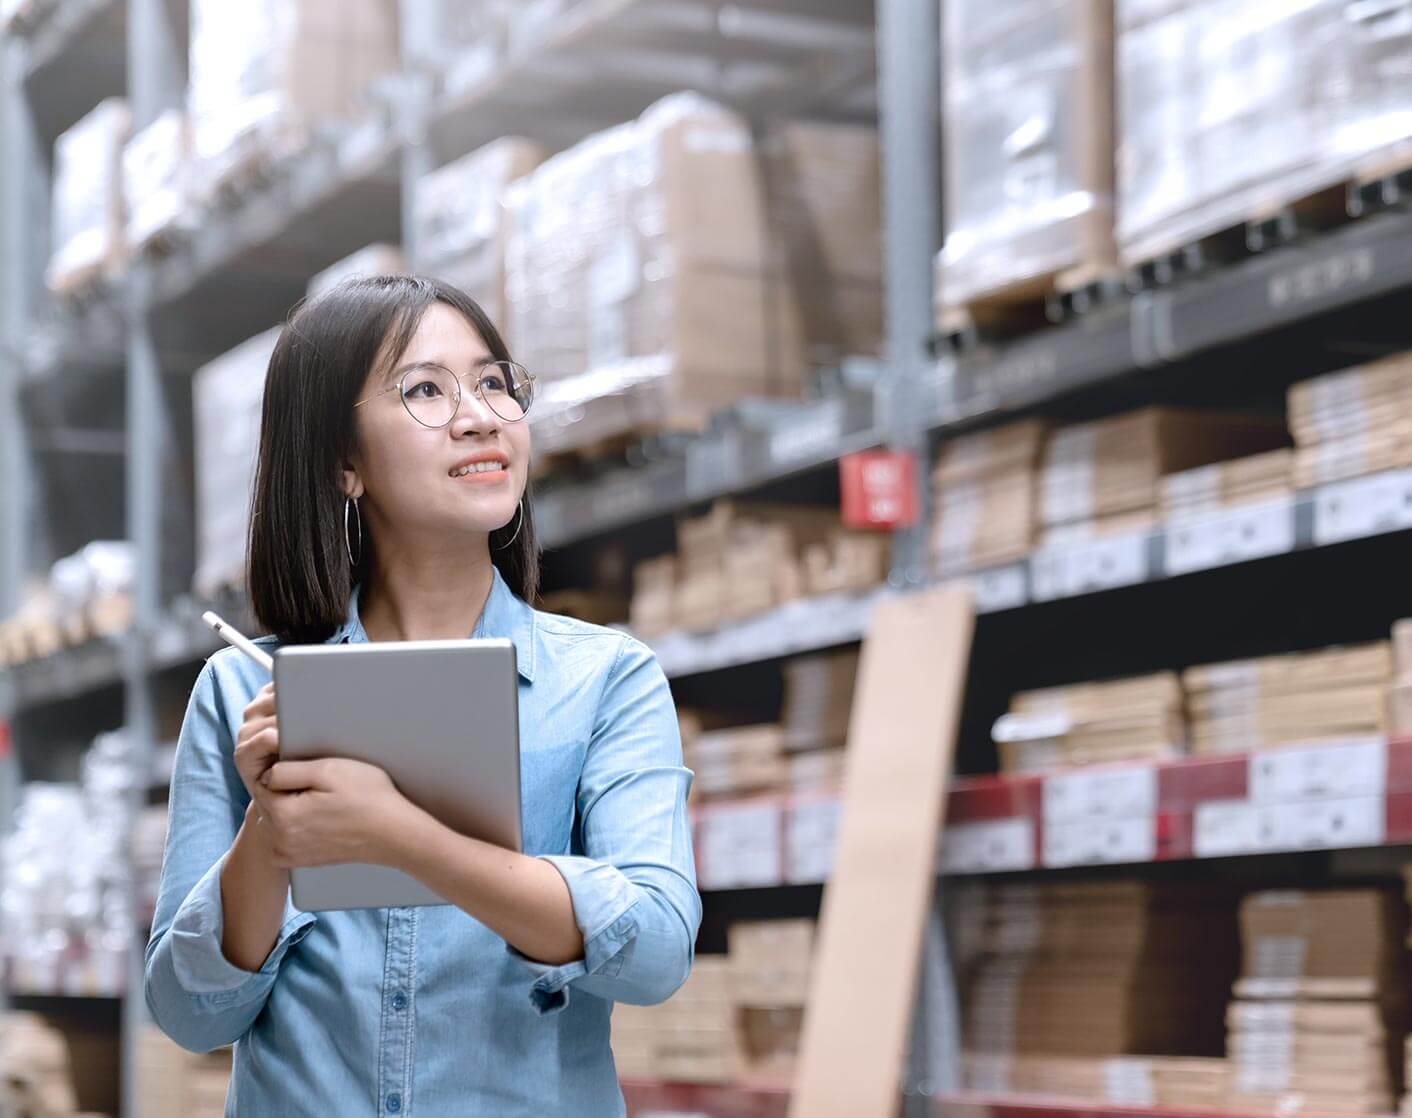 Asian woman in warehouse looking up away from camera holding a tablet and stylus